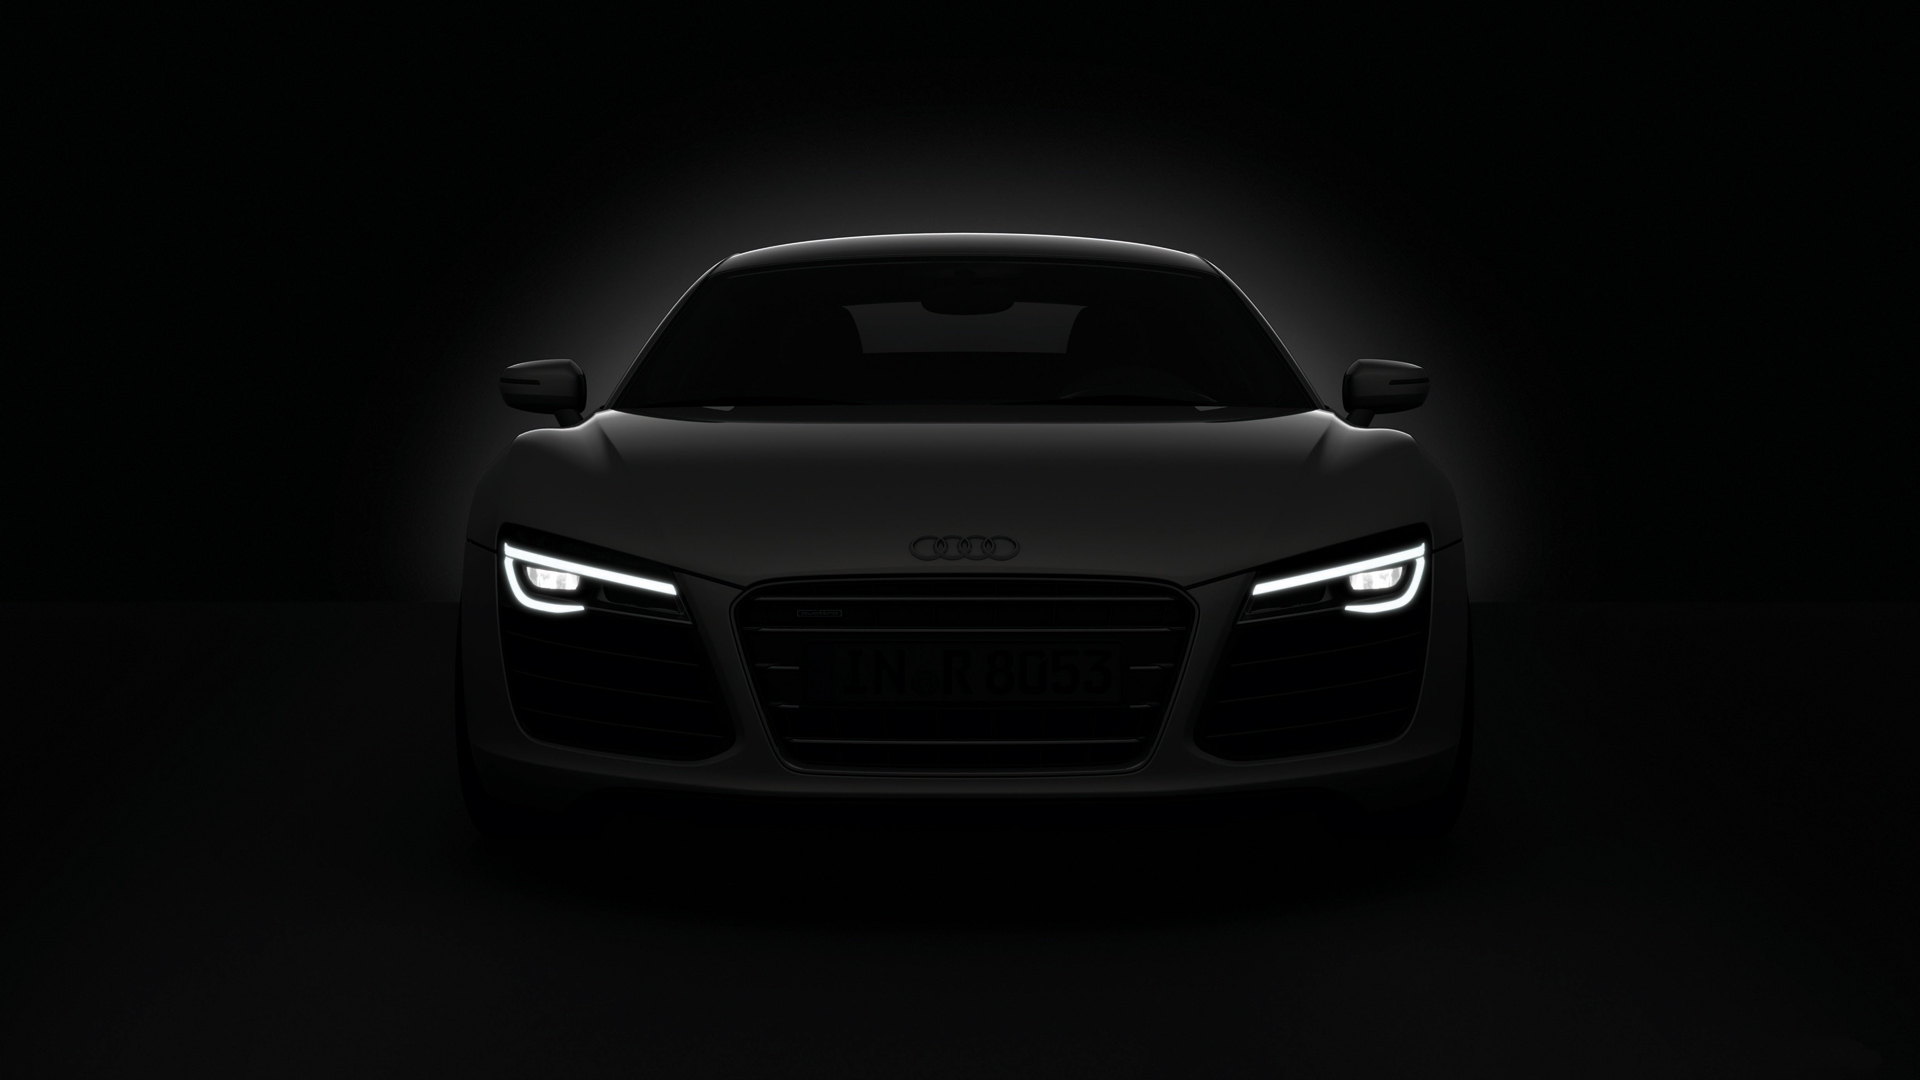 wallpaper.wiki-audi-r8-background-pic-wpe0011948 | wallpaper.wiki